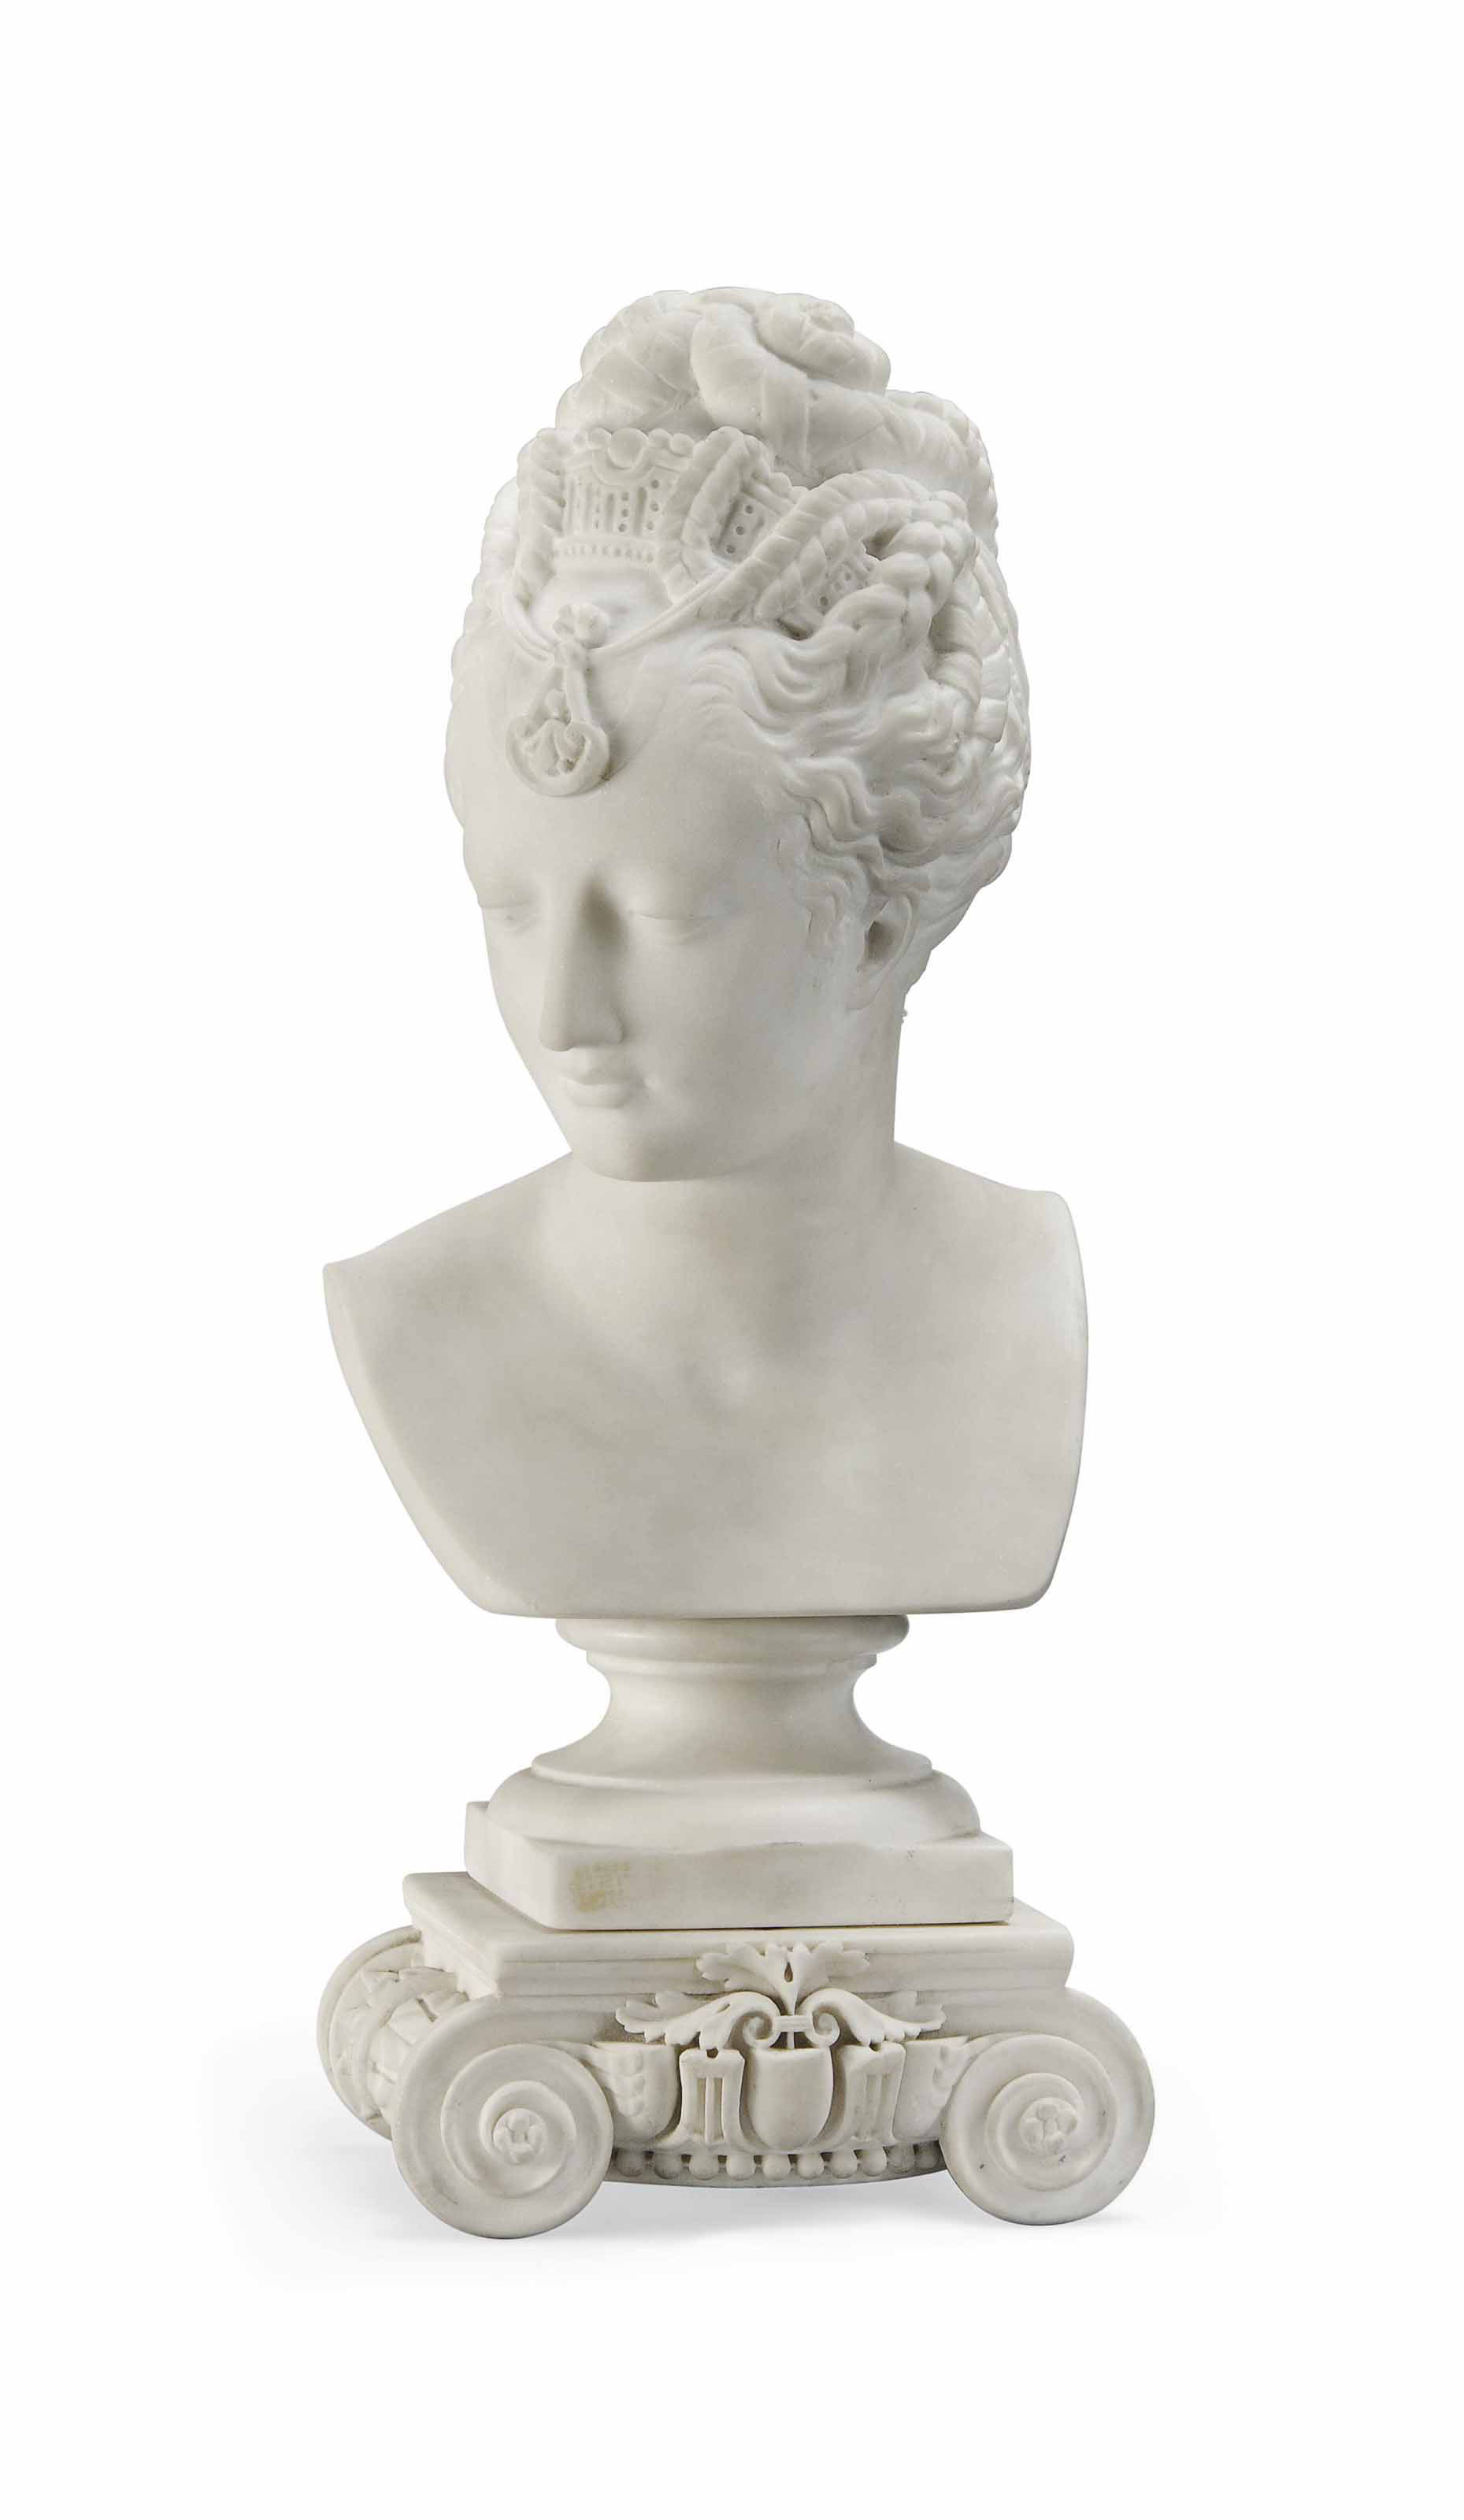 A FRENCH MARBLE BUST OF A CLASSICAL LADY